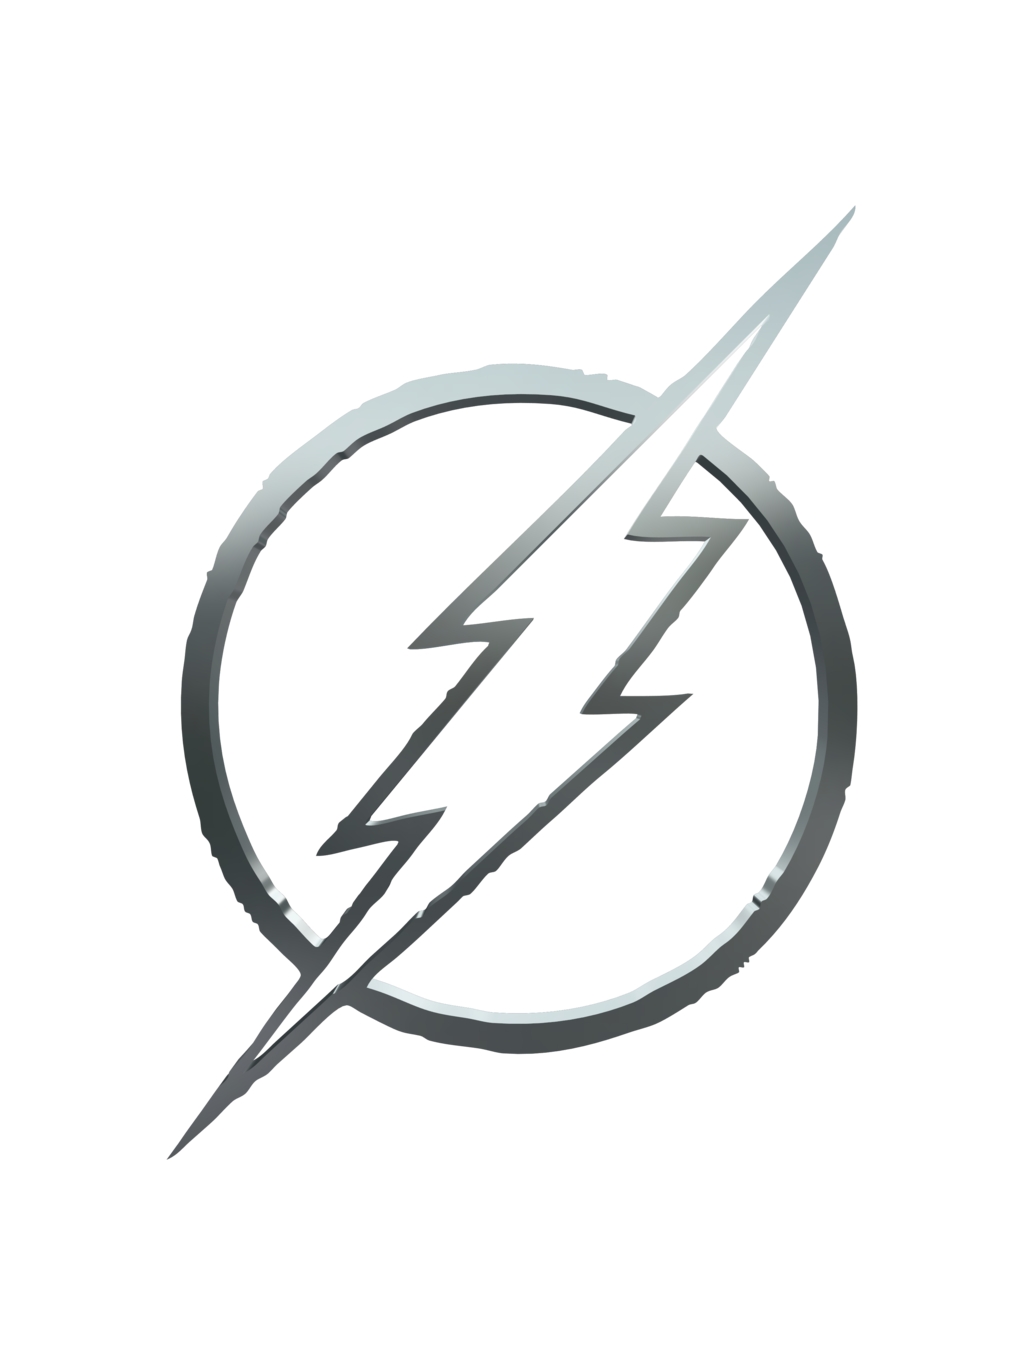 Transparent flash symbol black. Dc s the logo